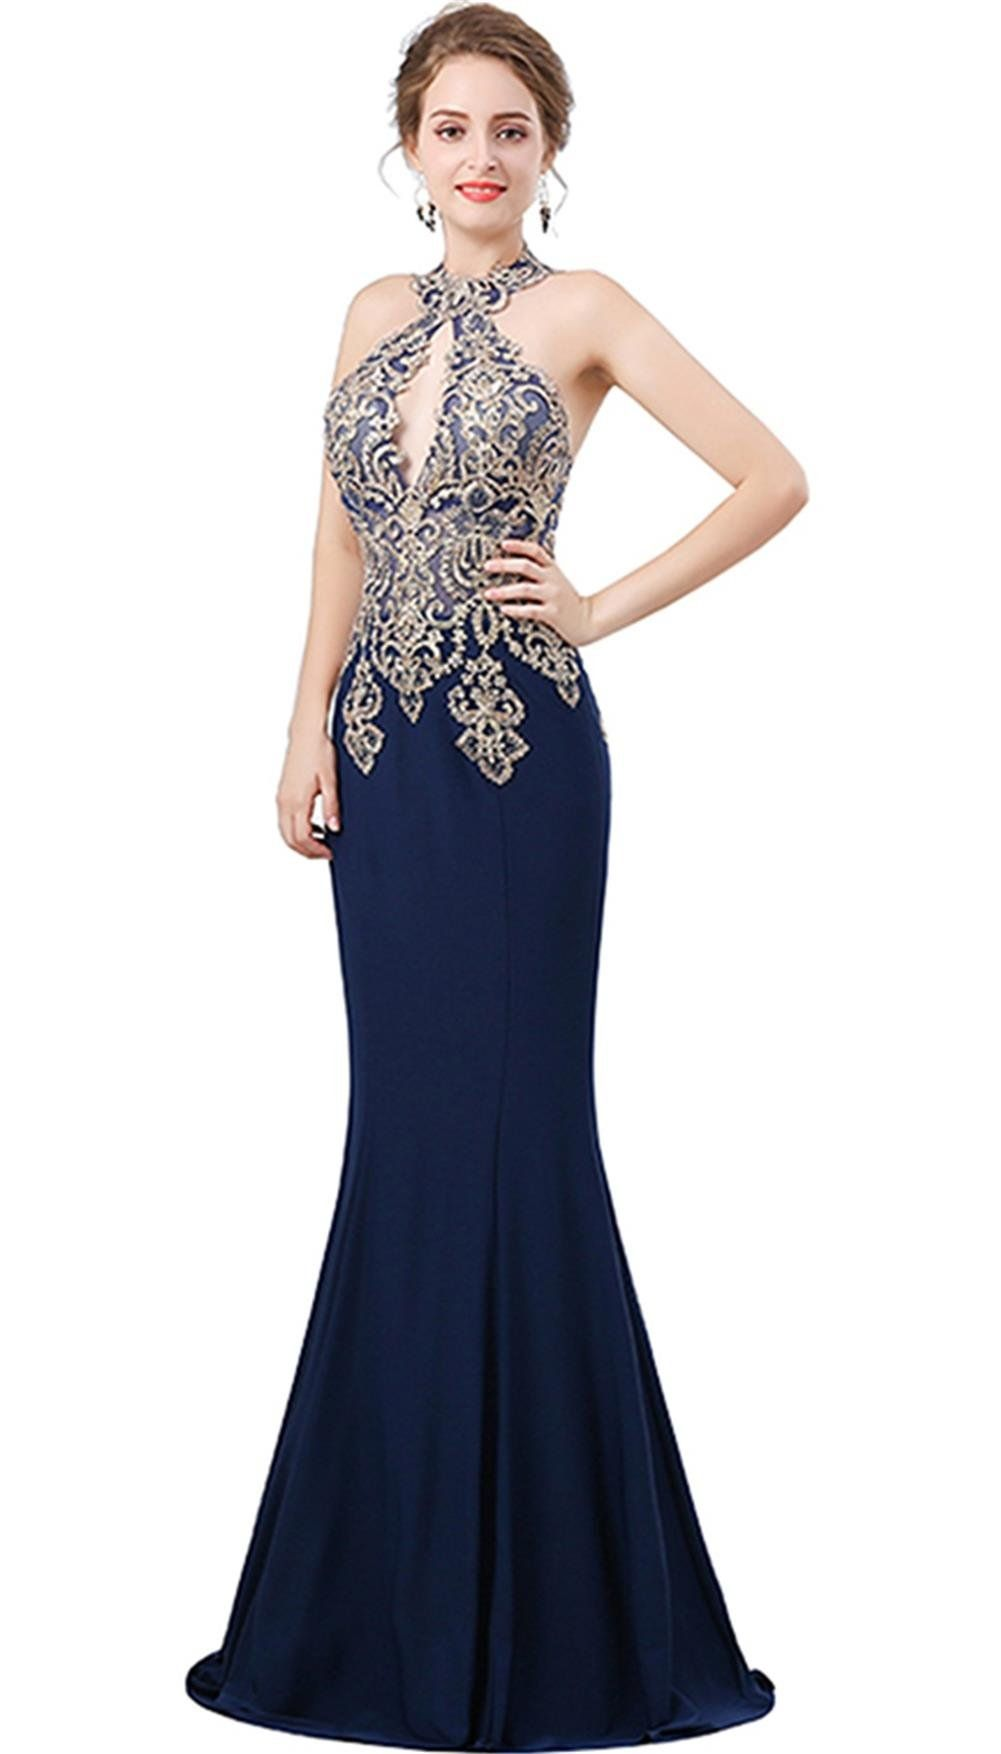 Heartgown womens prom dresses sexy mermaid long lace embroidery high